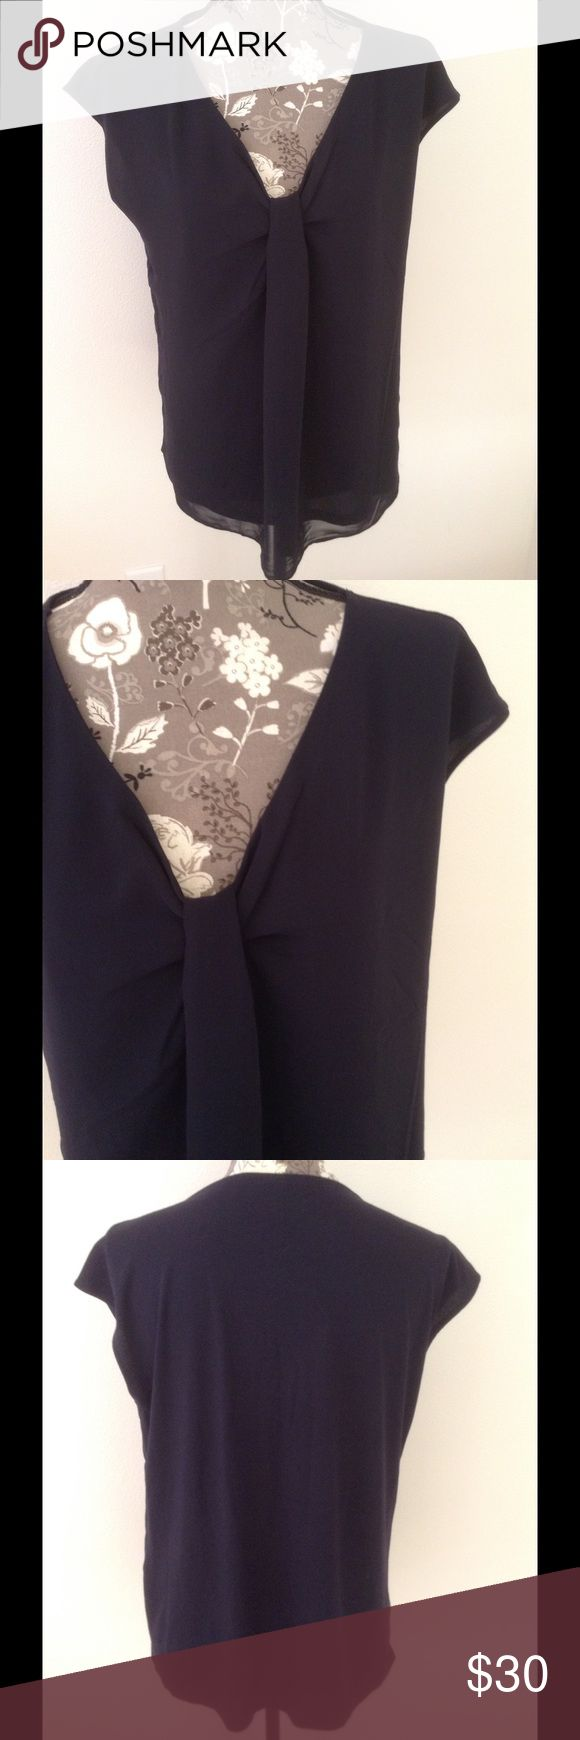 Black short sleeve top with knotted front Back short sleeve top with v-neck and knot front design. Front body 100% polyester, back body 60 % cotton/40% modal, lining 100% polyester. Machine wash cold. Ann Taylor Tops Blouses